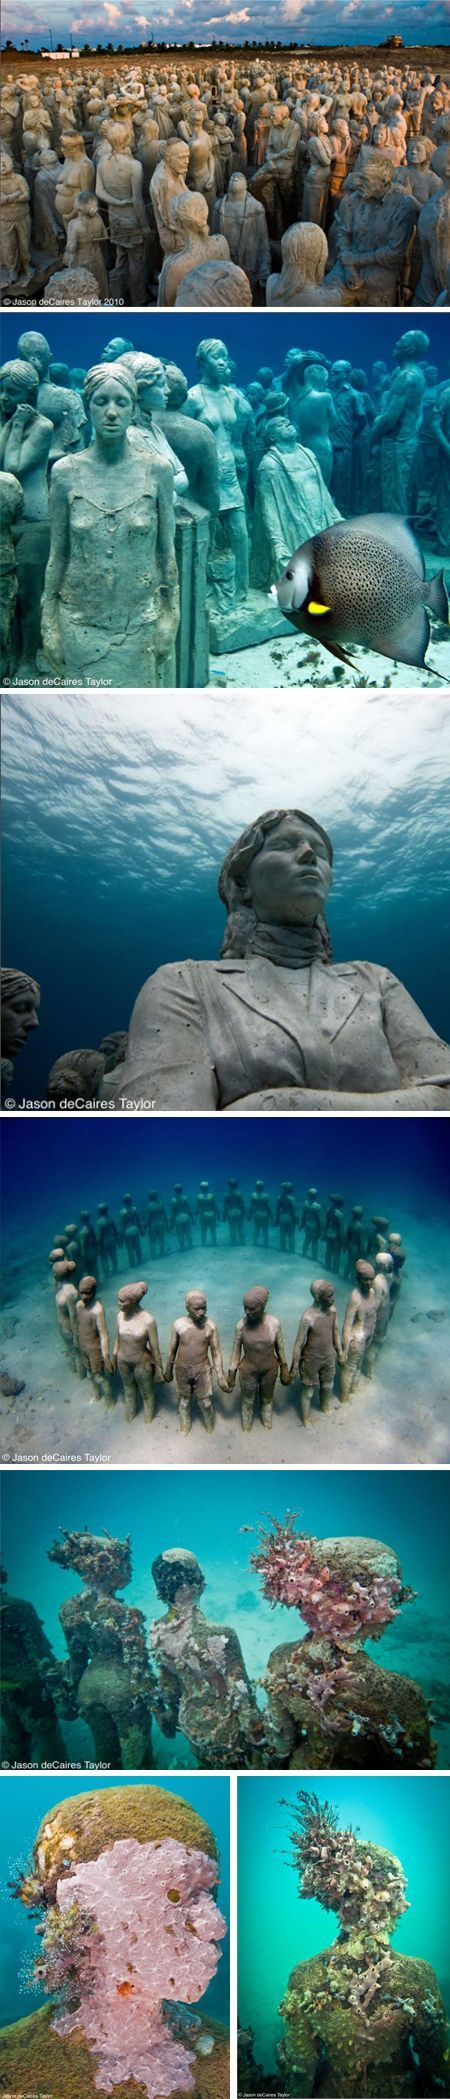 "jason de caires taylor's underwater sculpture garden in cancun. ""constructed out of concrete and steel, and bolted to the ocean substrate, the works here act as artificial reefs that provide ""an ideal habitat for filter feeding organisms.""""   www.dedeceblog.co..."